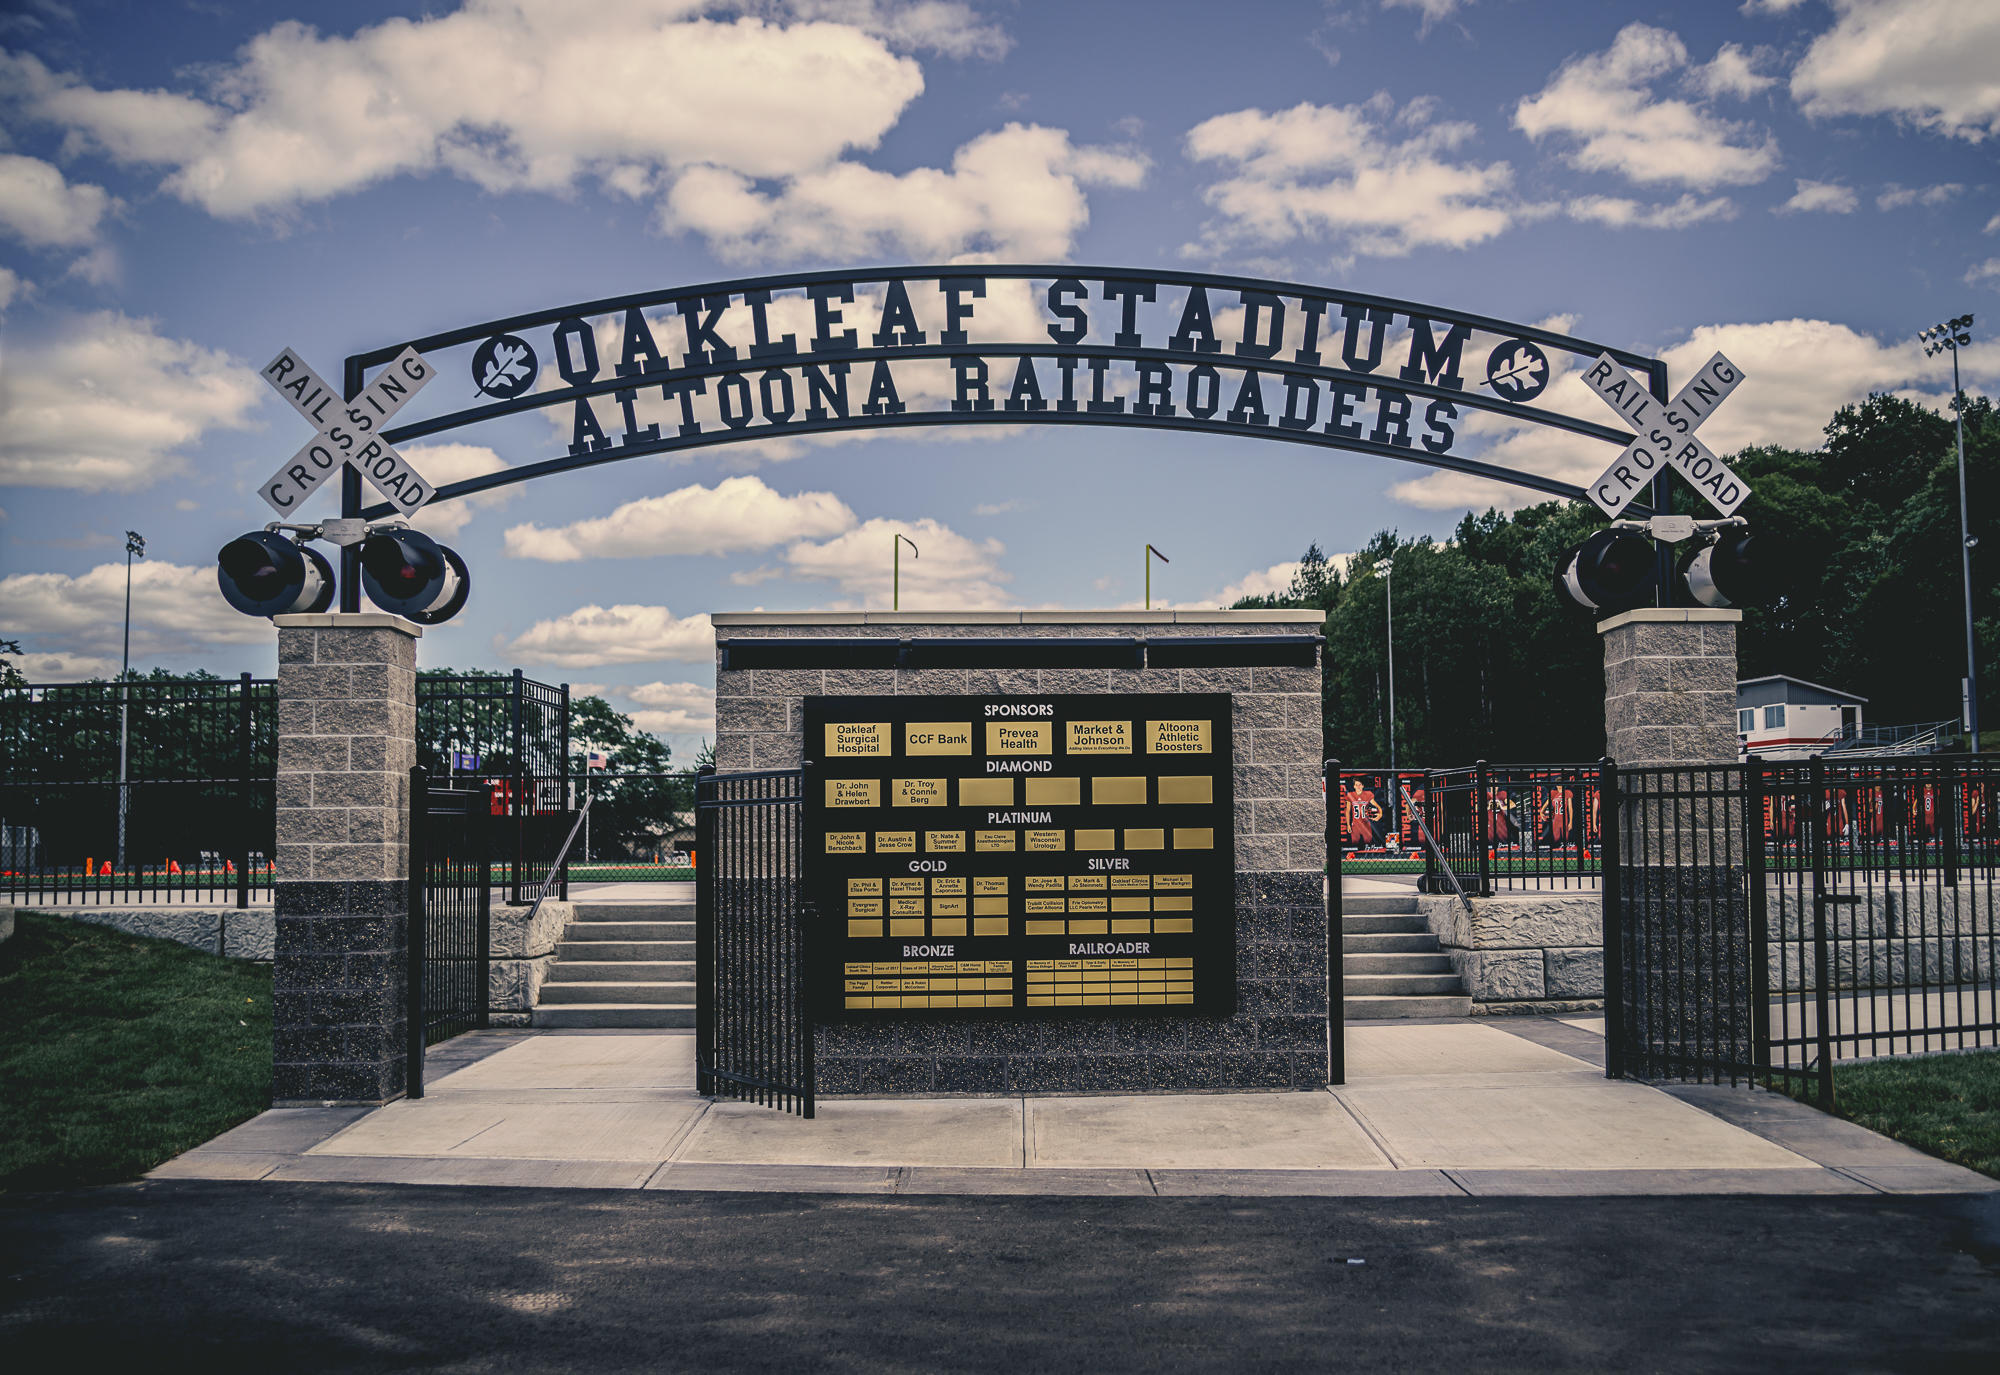 Front view through the gates of OakLeaf Stadium